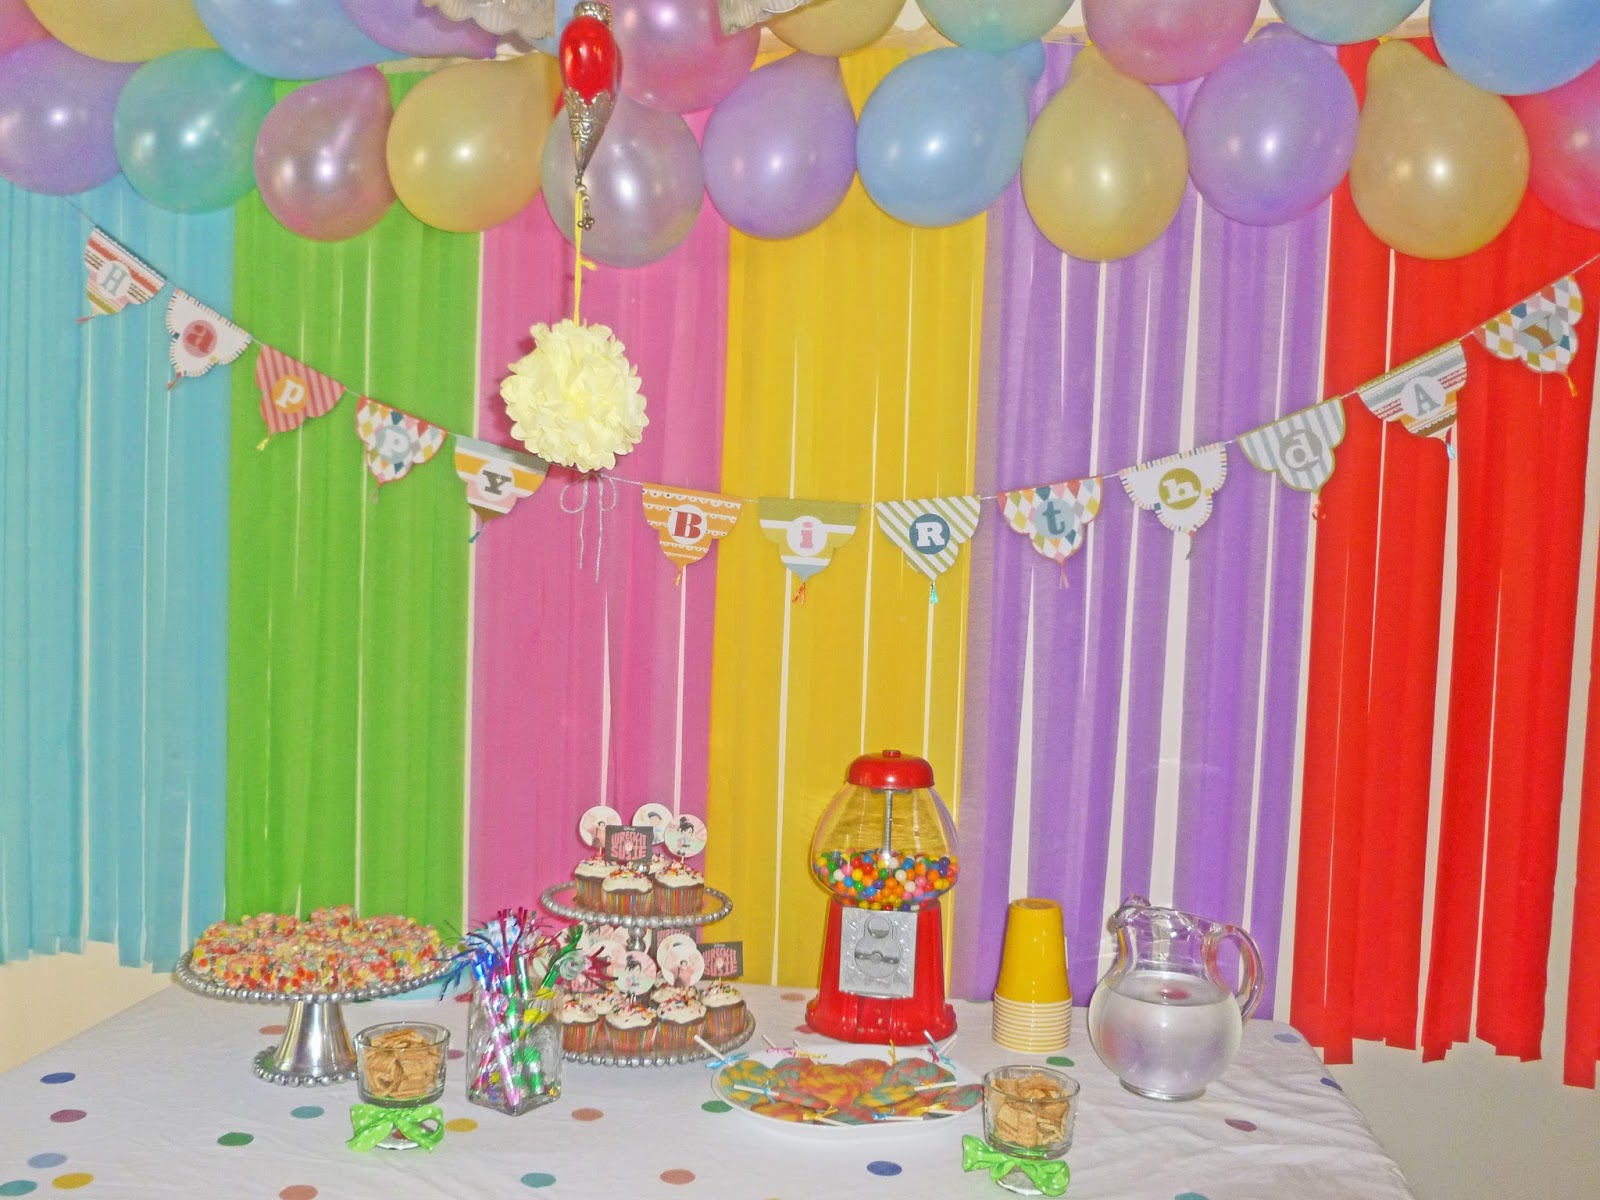 Birthday Decorations With Streamers Image Inspiration Of  sc 1 st  Elitflat & Birthday Party Streamer Decoration Ideas - Elitflat